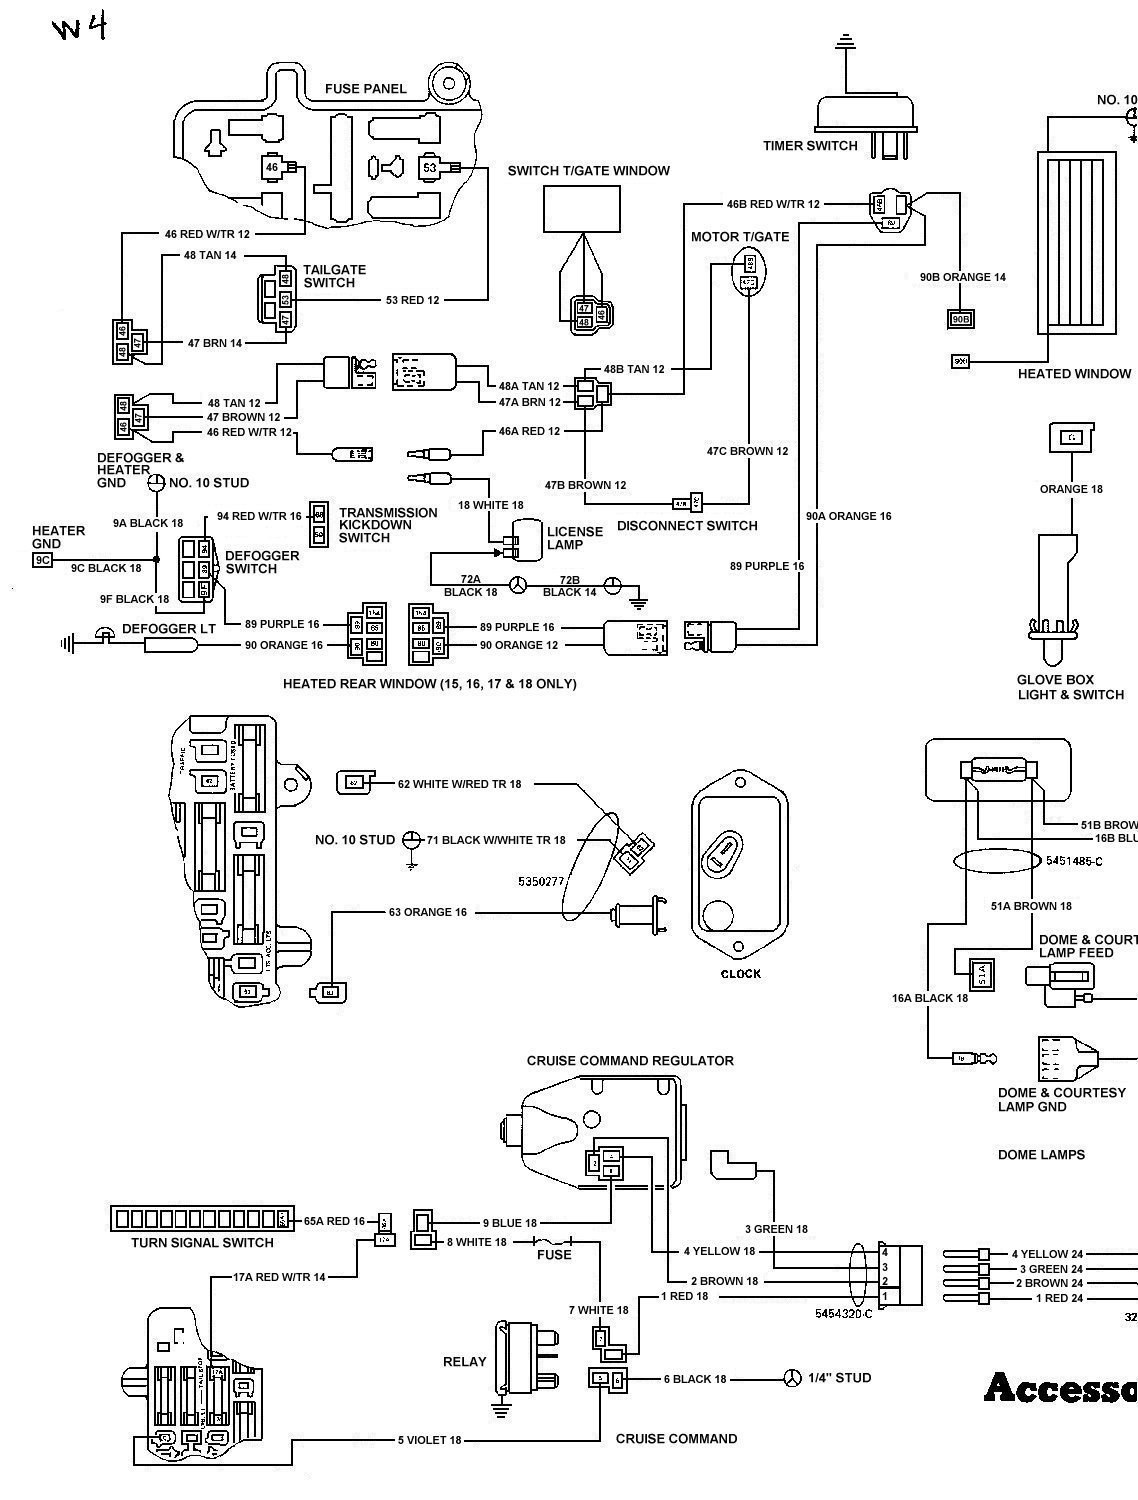 1985 Jeep Cj7 Wiring Starting Know About Diagram Alternator J10 Schematics Data Schema Rh Site De Joueurs Com